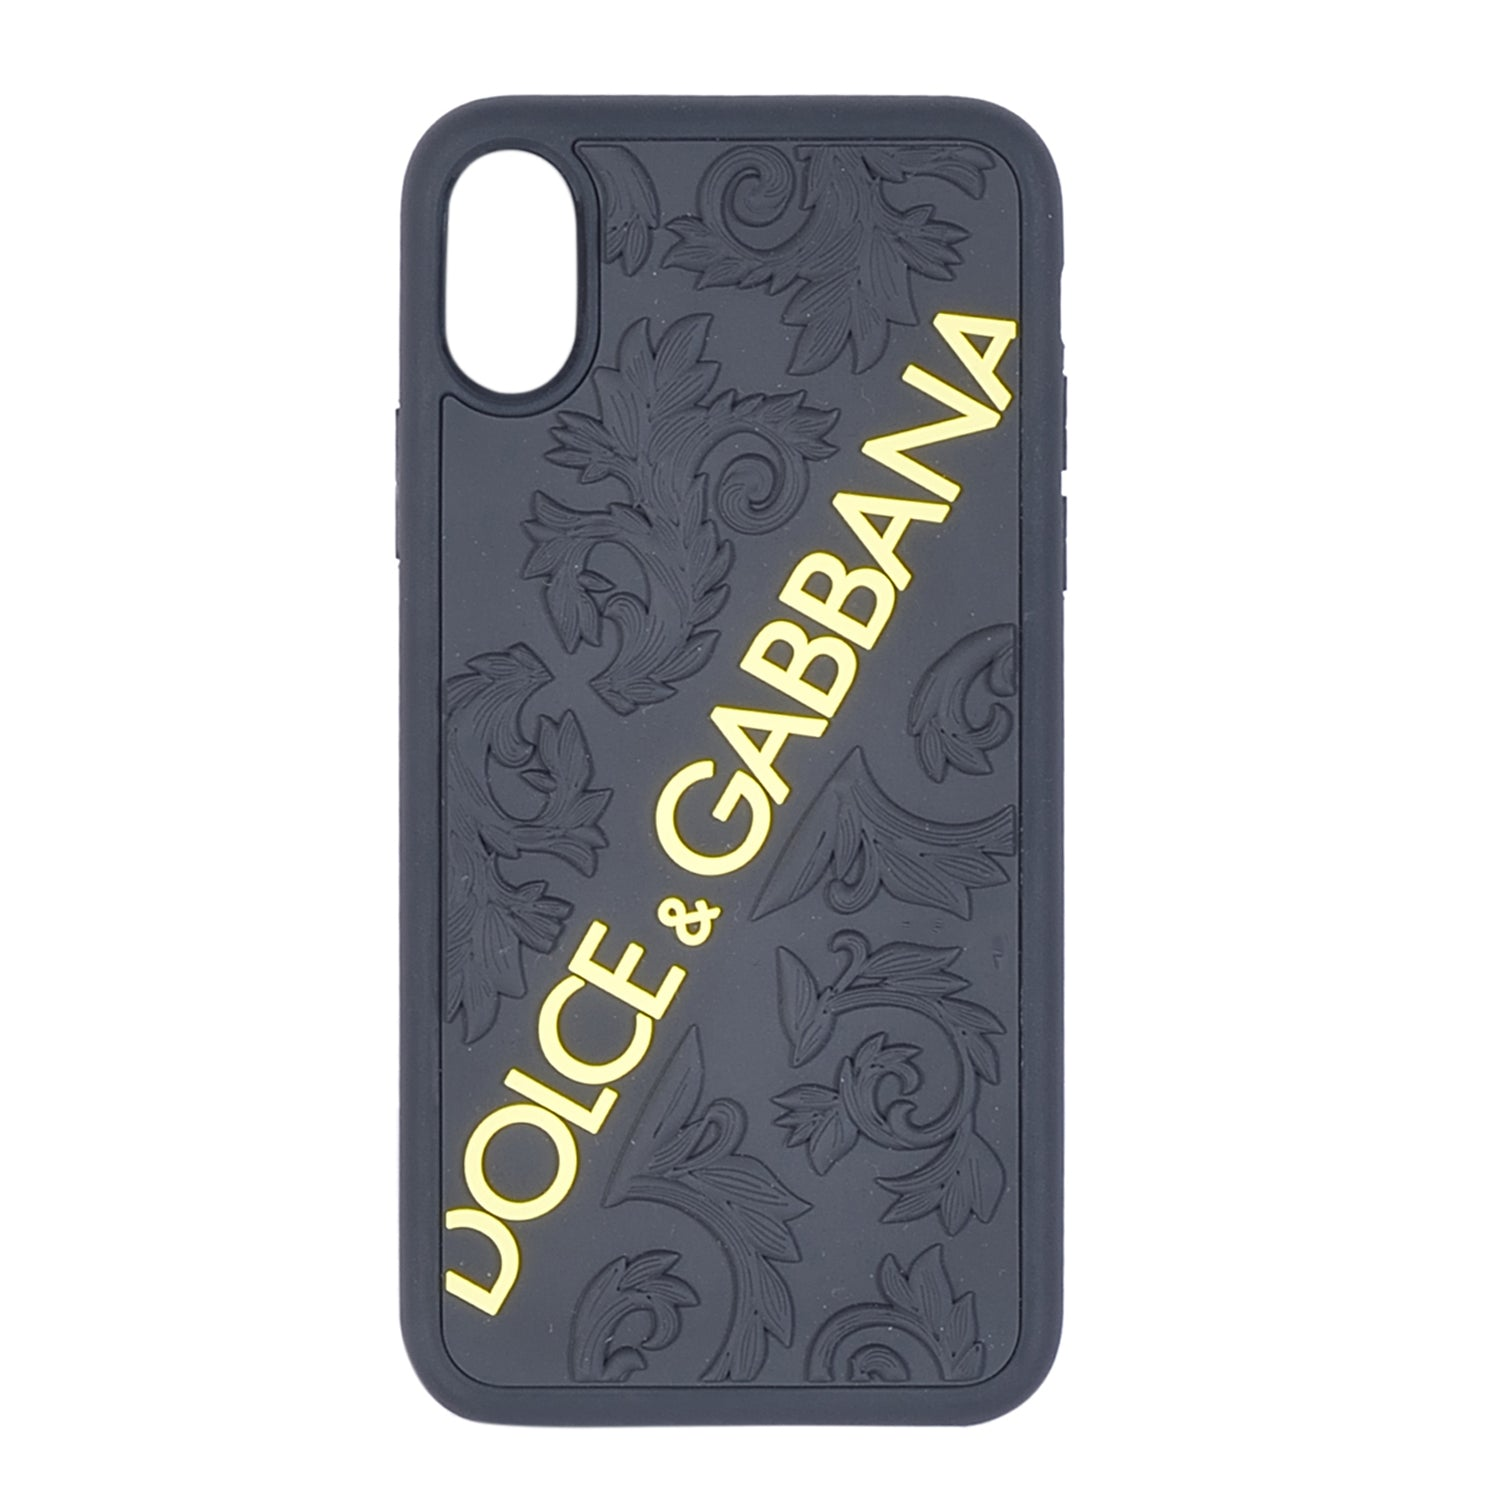 DOLCE & GABBANA Black iPhone X Cover